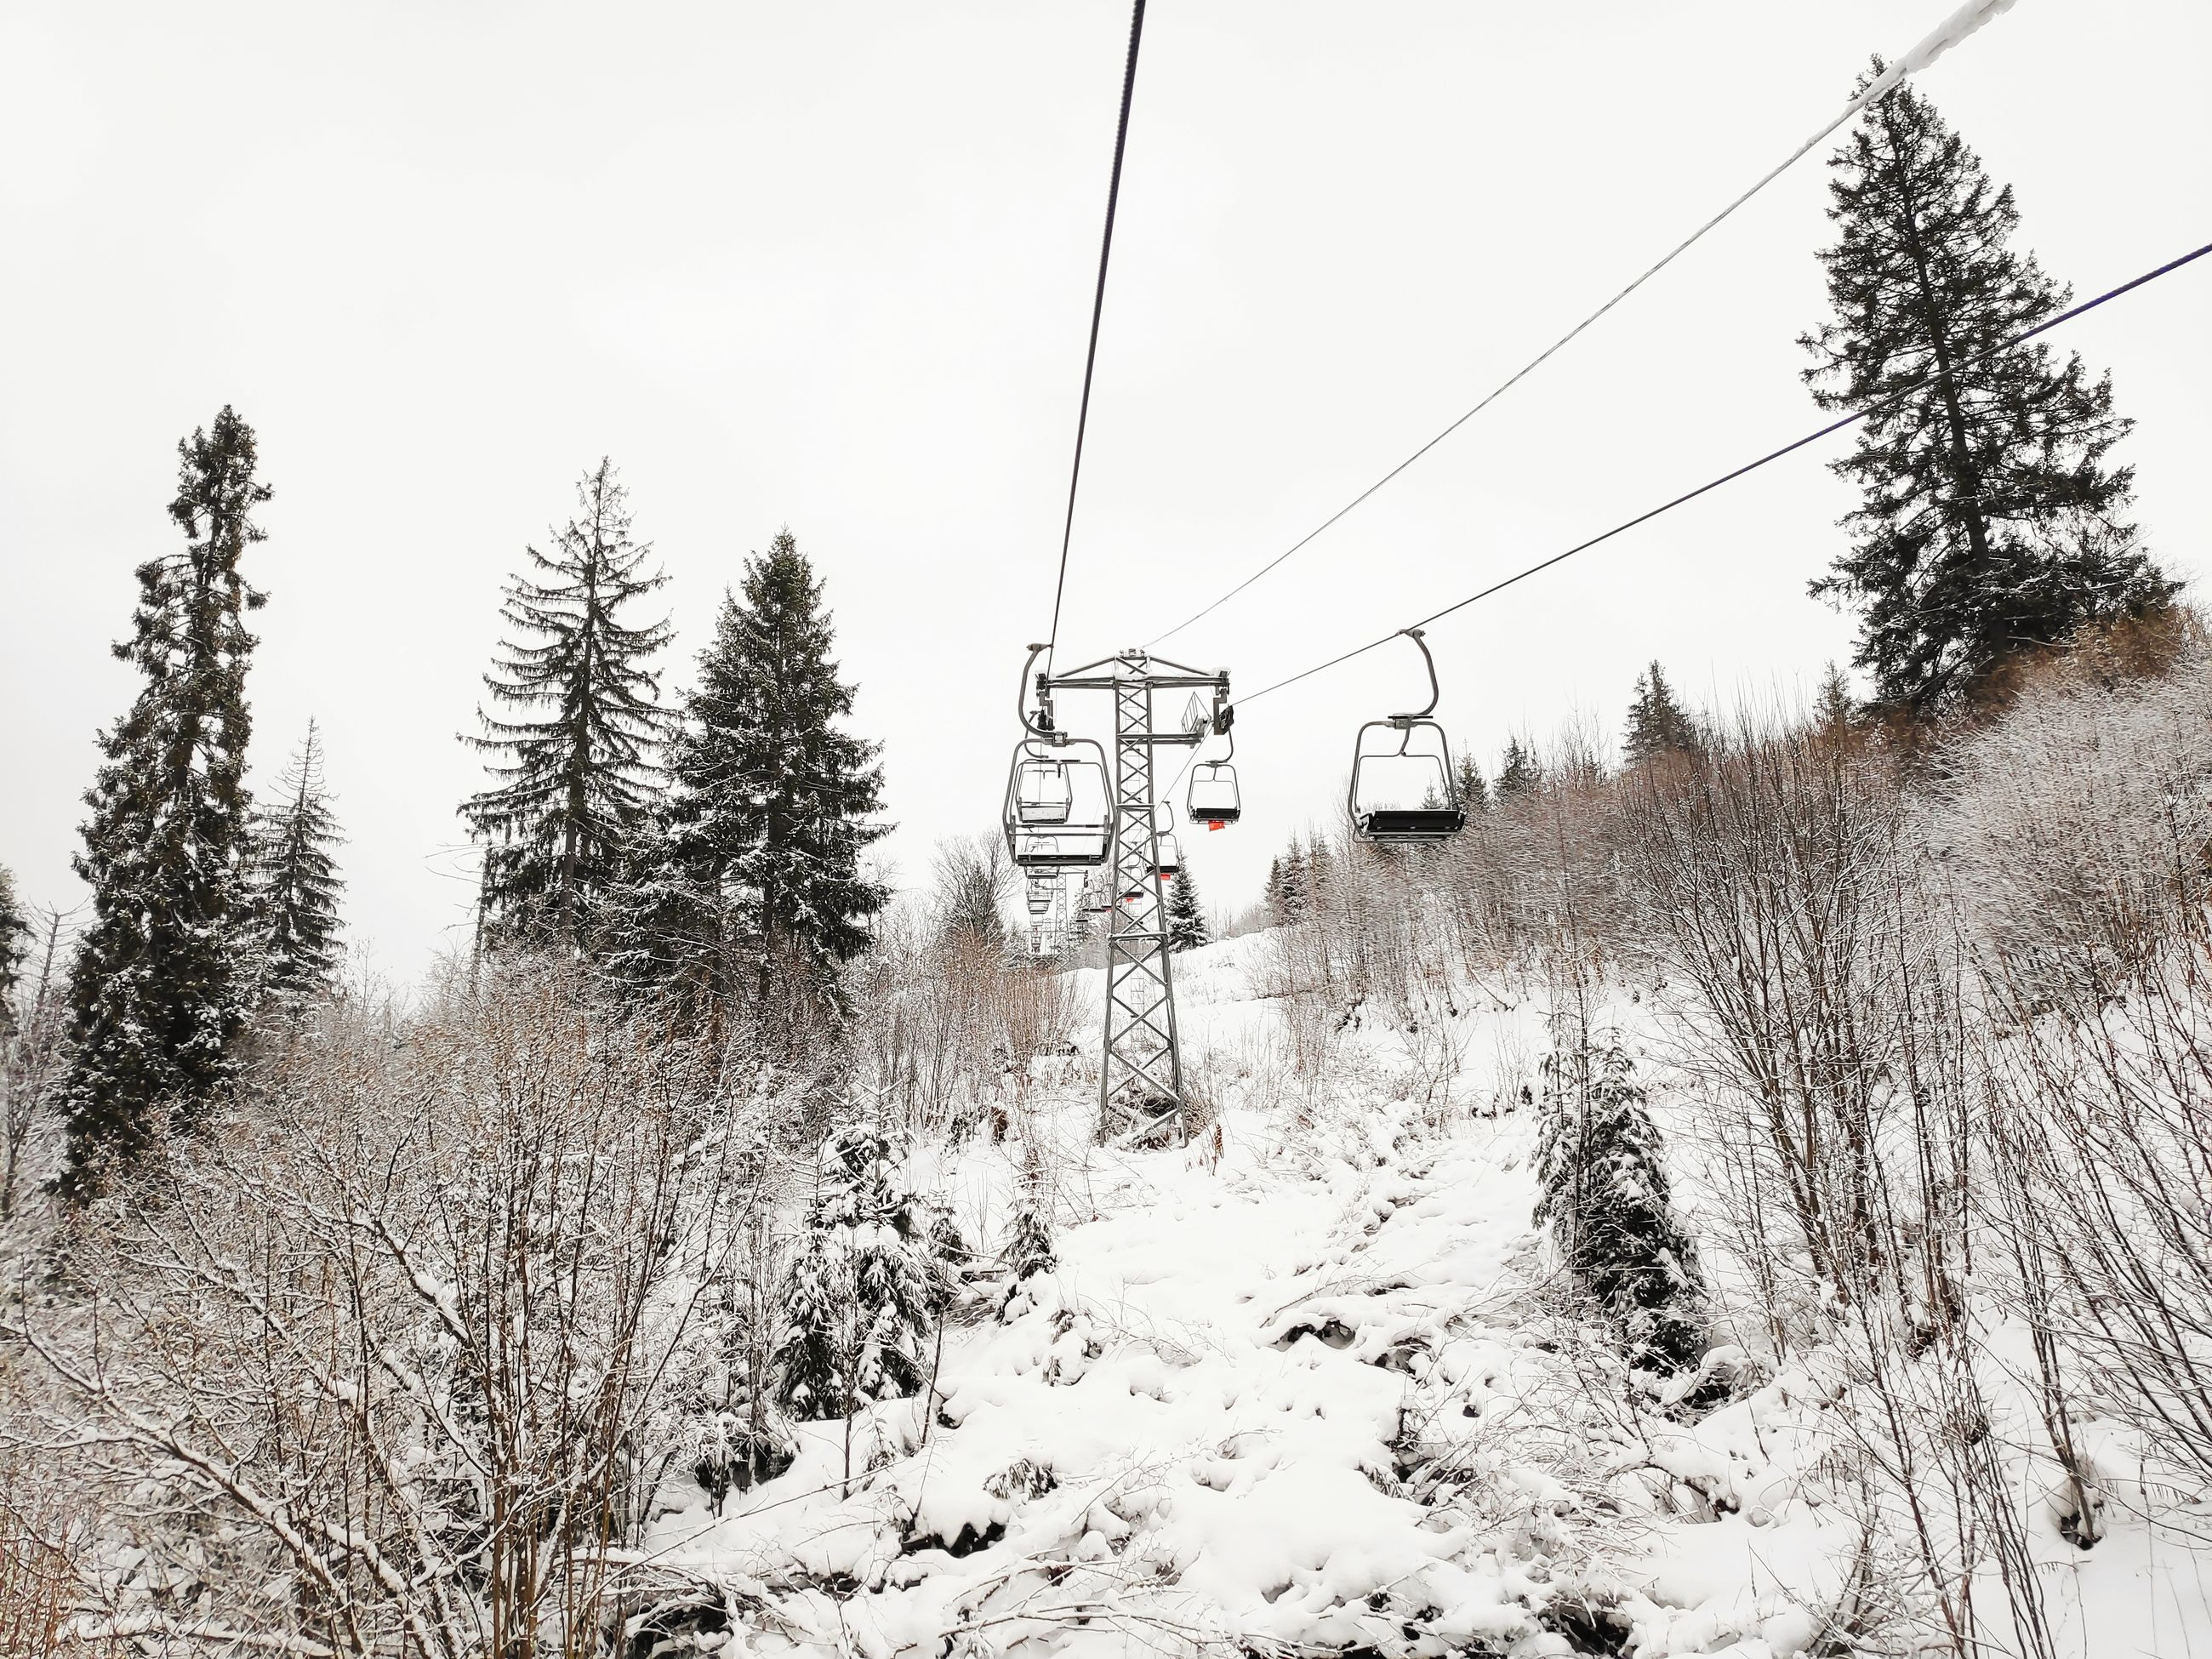 snow, winter, cold temperature, tree, transportation, plant, nature, cable, land, covering, day, mode of transportation, sky, no people, white color, scenics - nature, field, cable car, beauty in nature, electricity, outdoors, track, snowcapped mountain